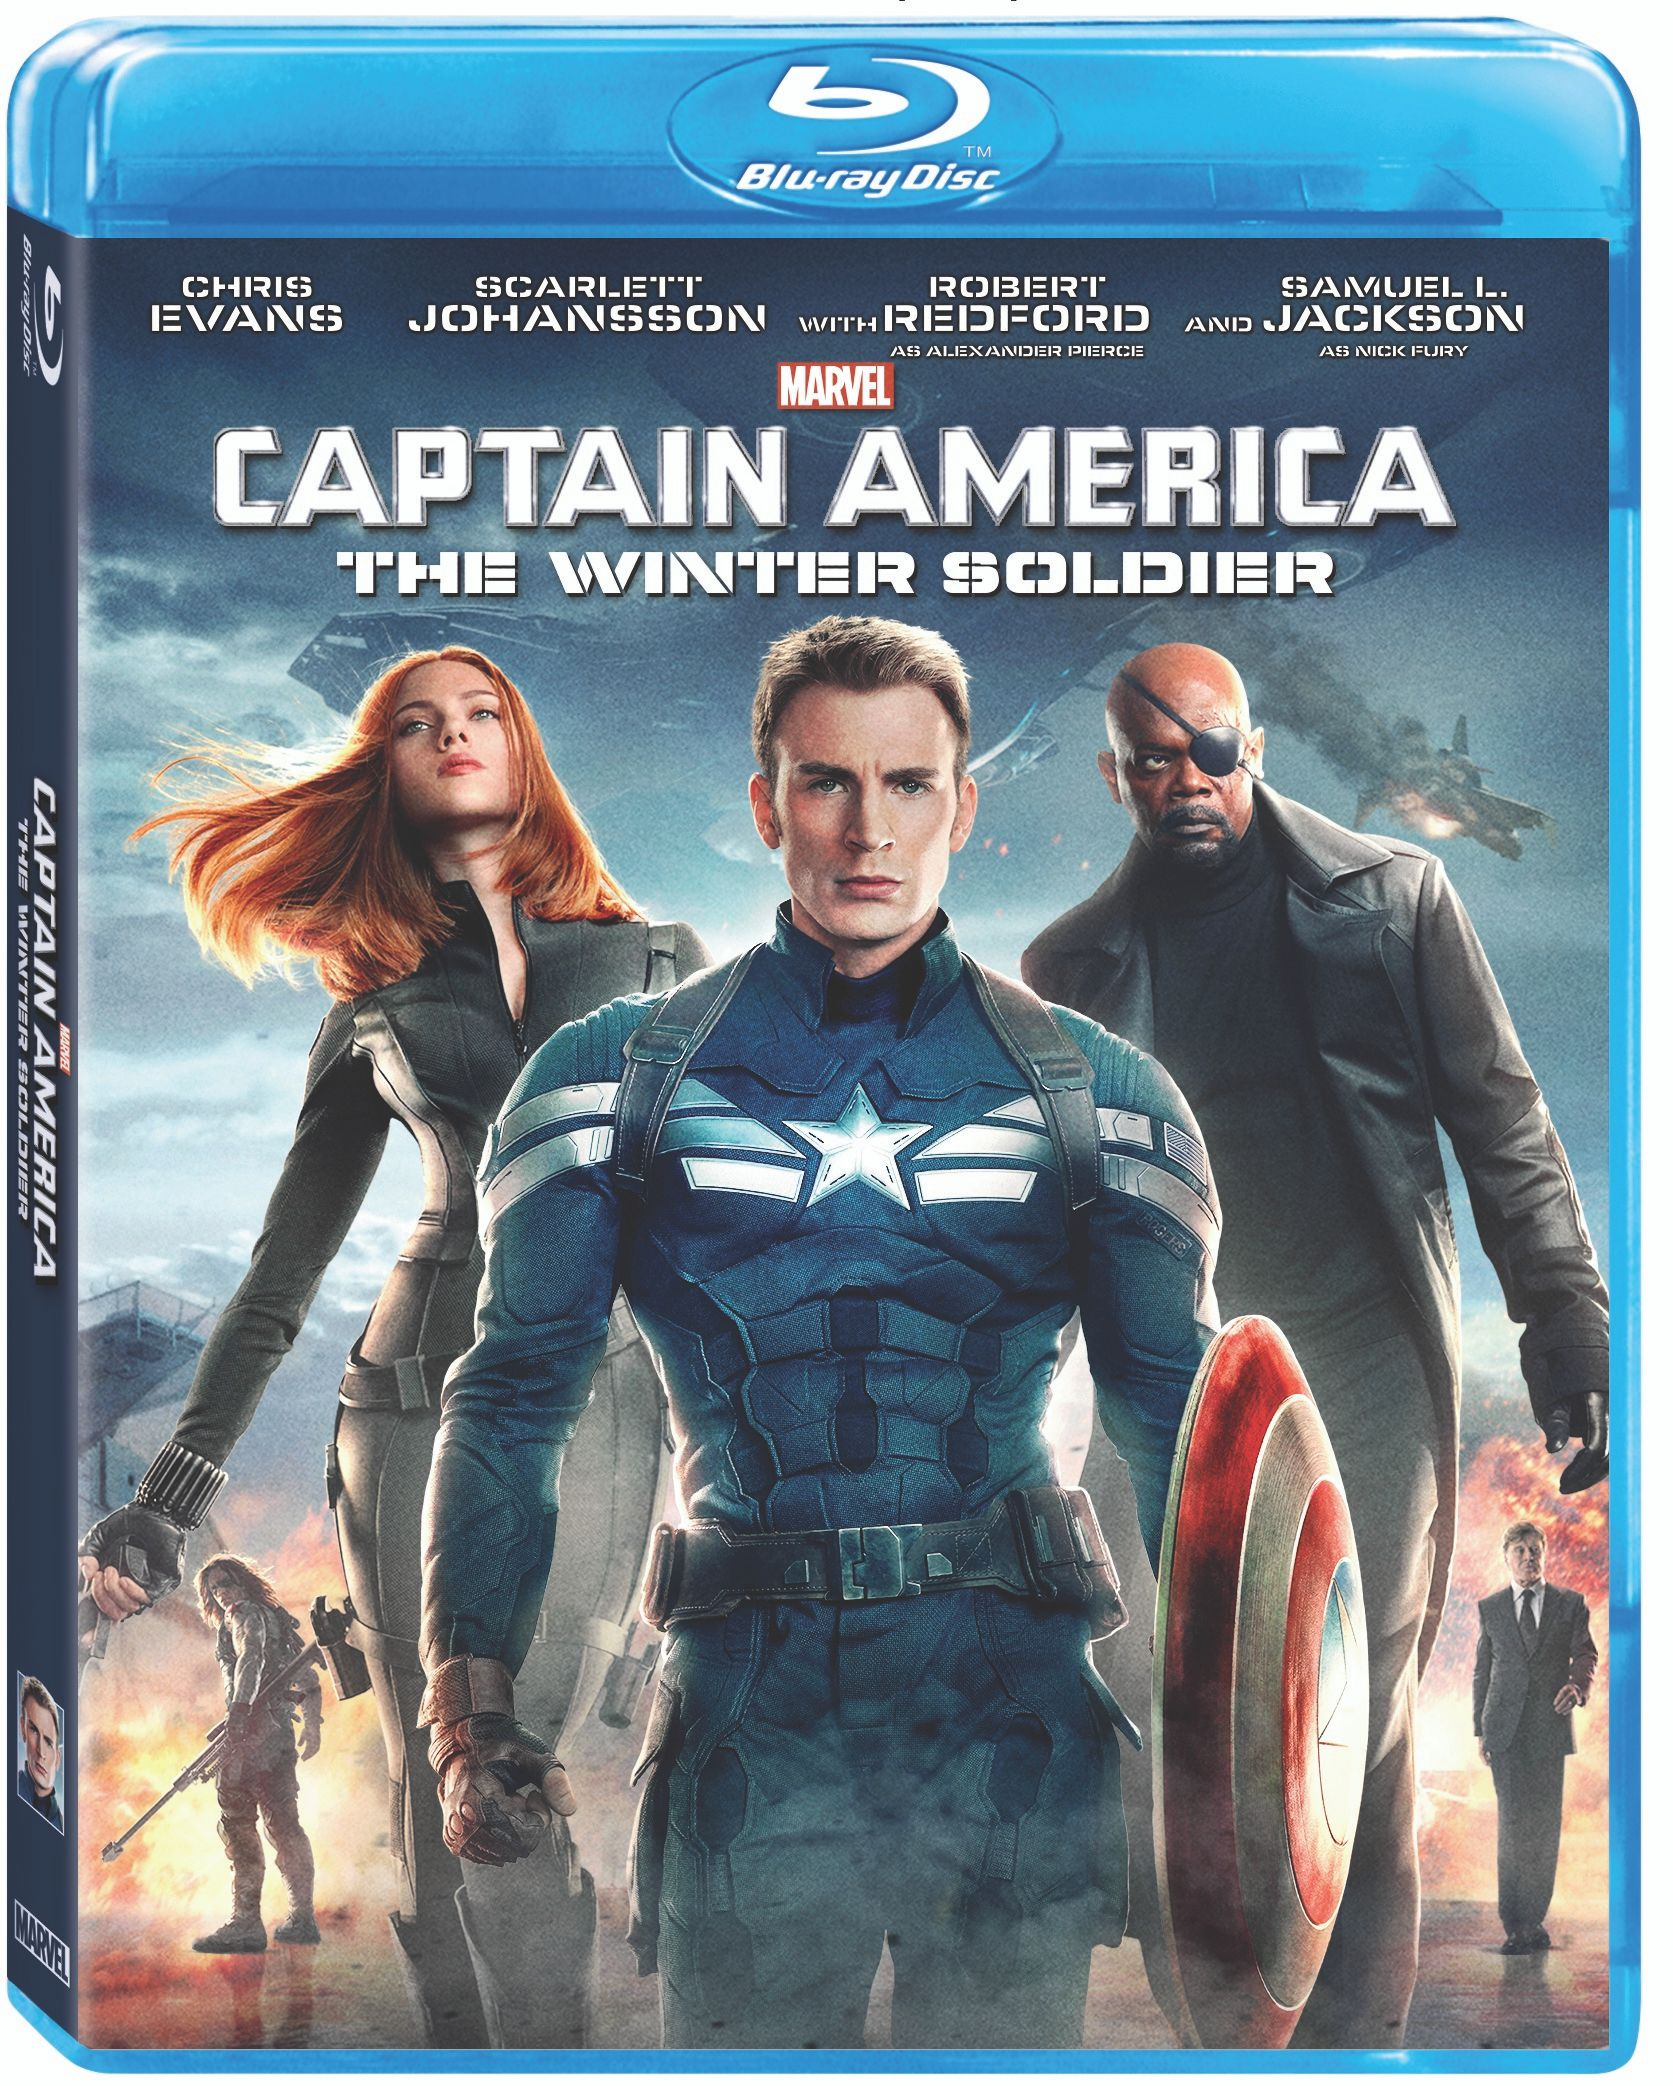 CAPTAIN AMERICA: THE WINTER SOLDIER Blu-ray Trailer